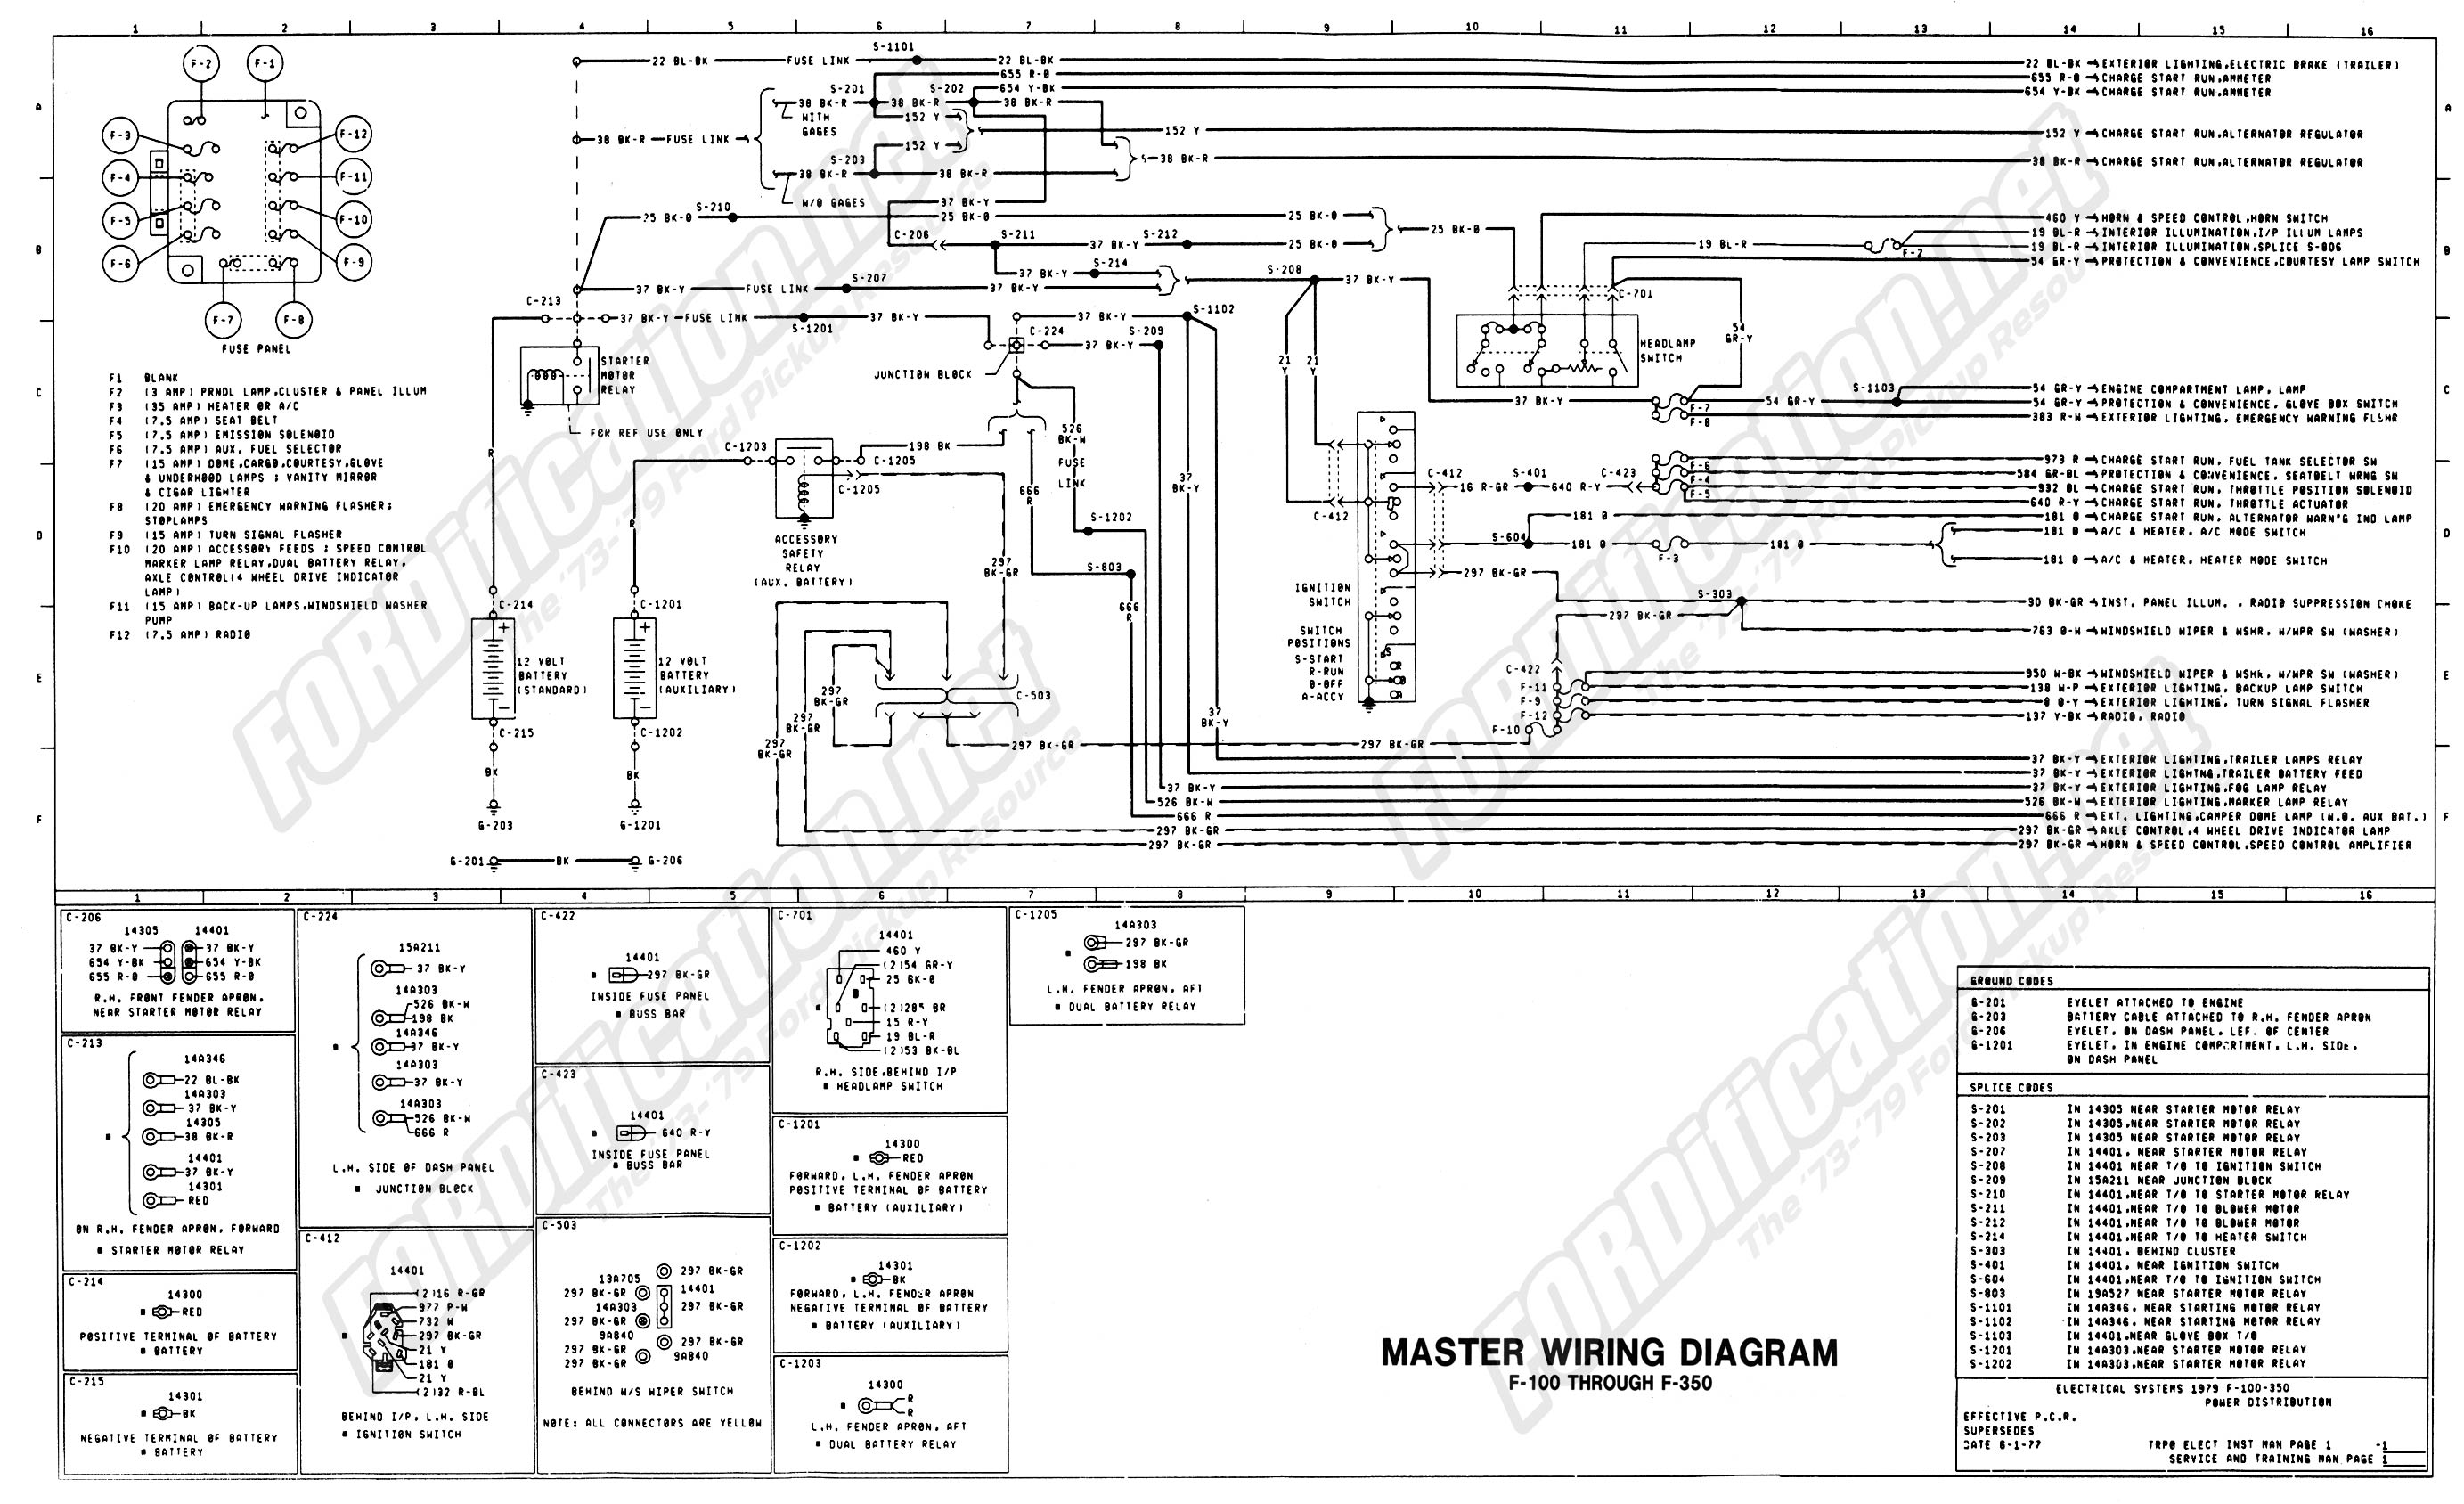 wiring_79master_1of9 1973 1979 ford truck wiring diagrams & schematics fordification net 1971 ford bronco fuse box at nearapp.co